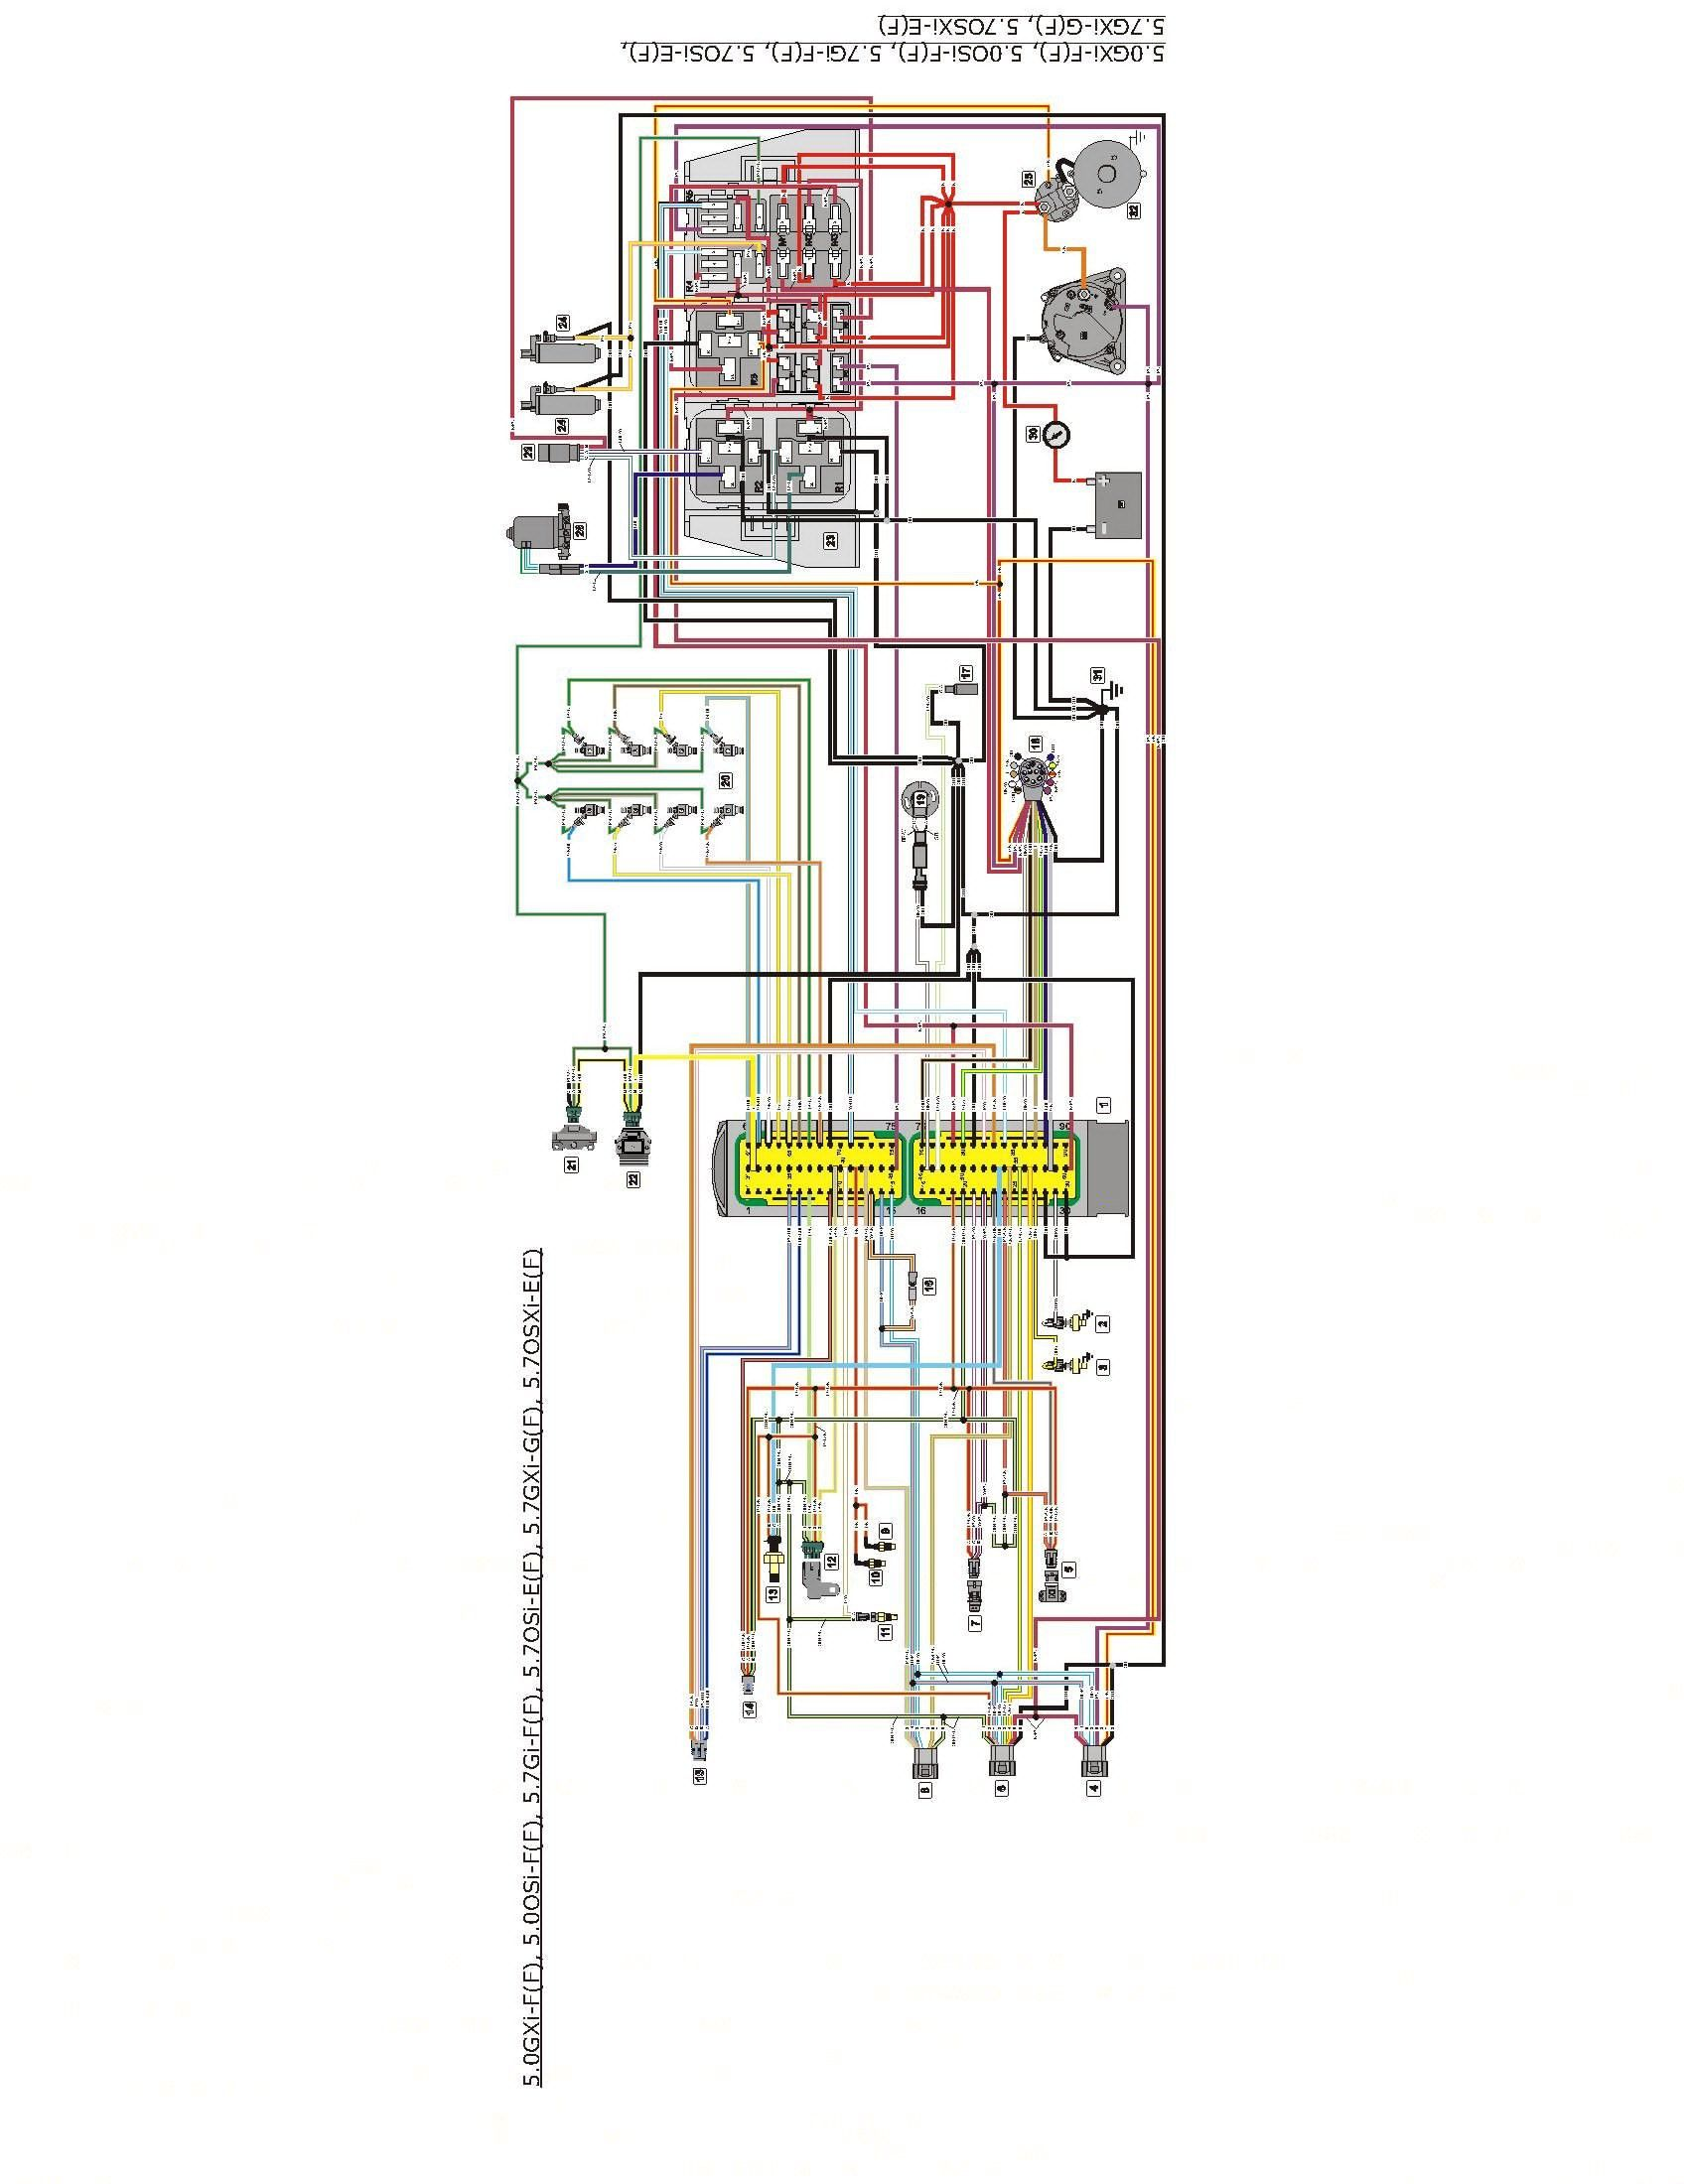 Super Mercury Outboard Power Trim Wiring Diagram Lovely Wiring Diagram For Wiring Cloud Hemtshollocom